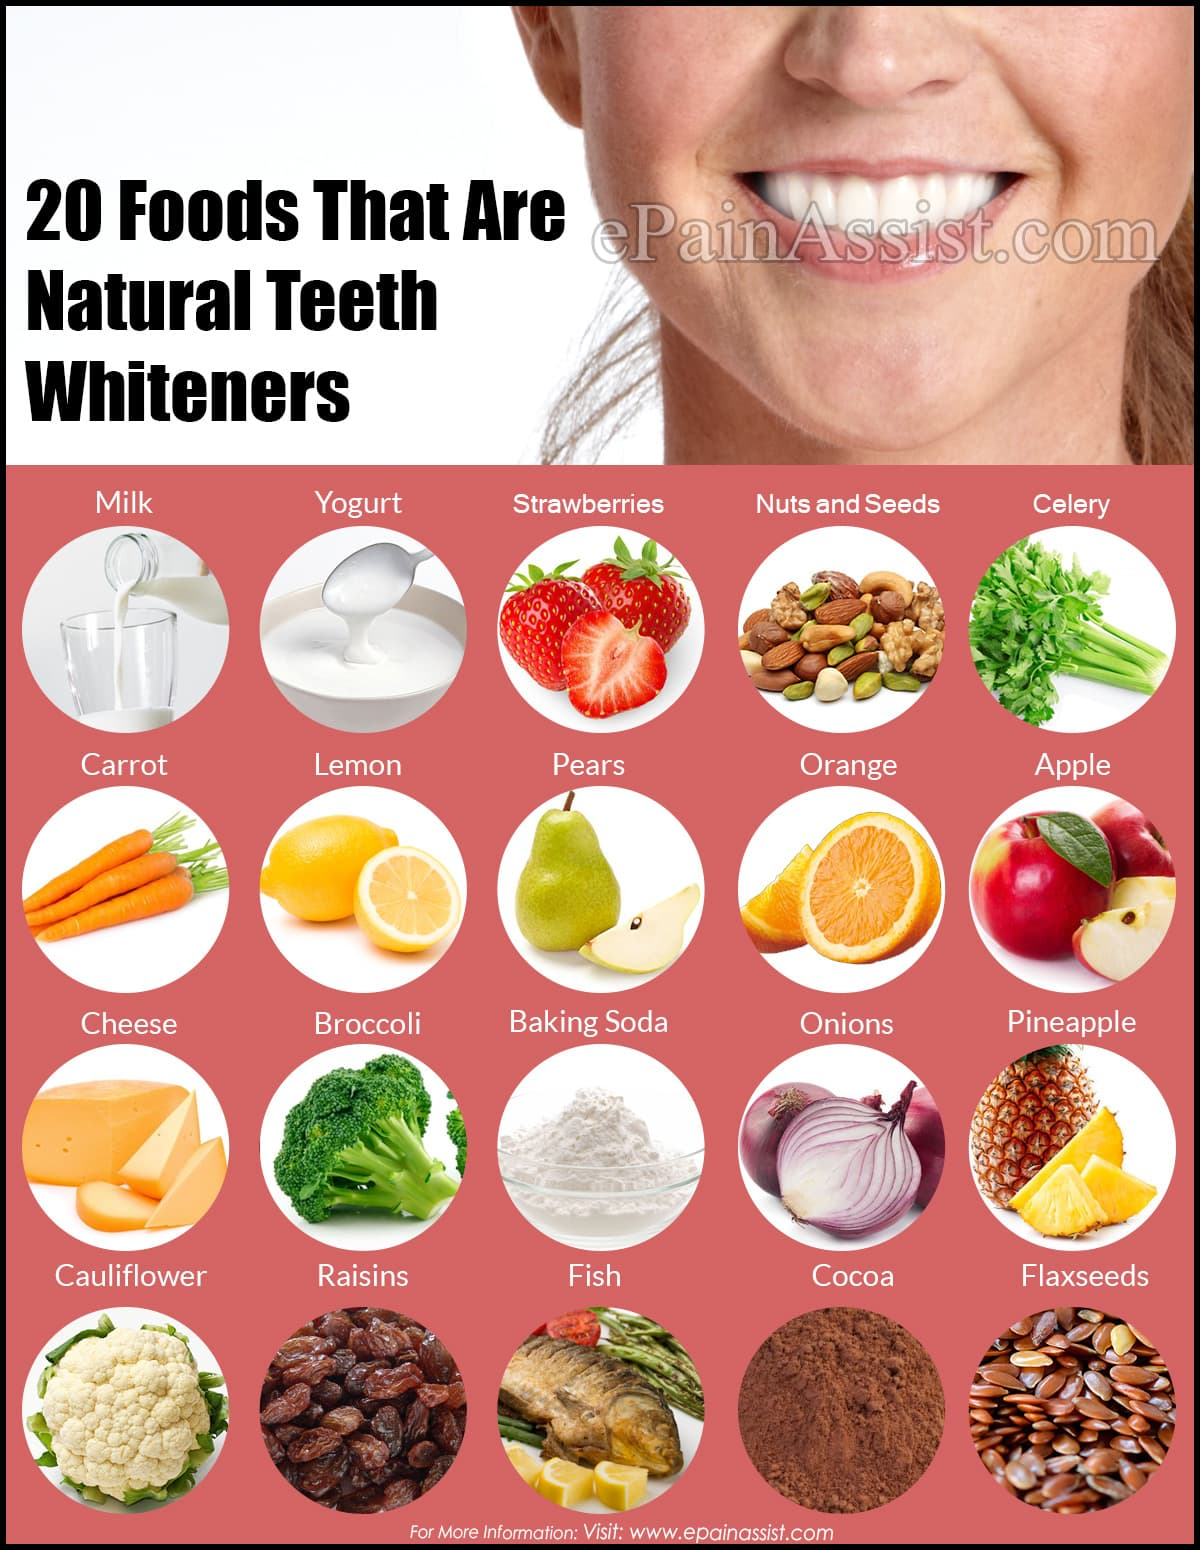 20 Foods That Are Natural Teeth Whiteners